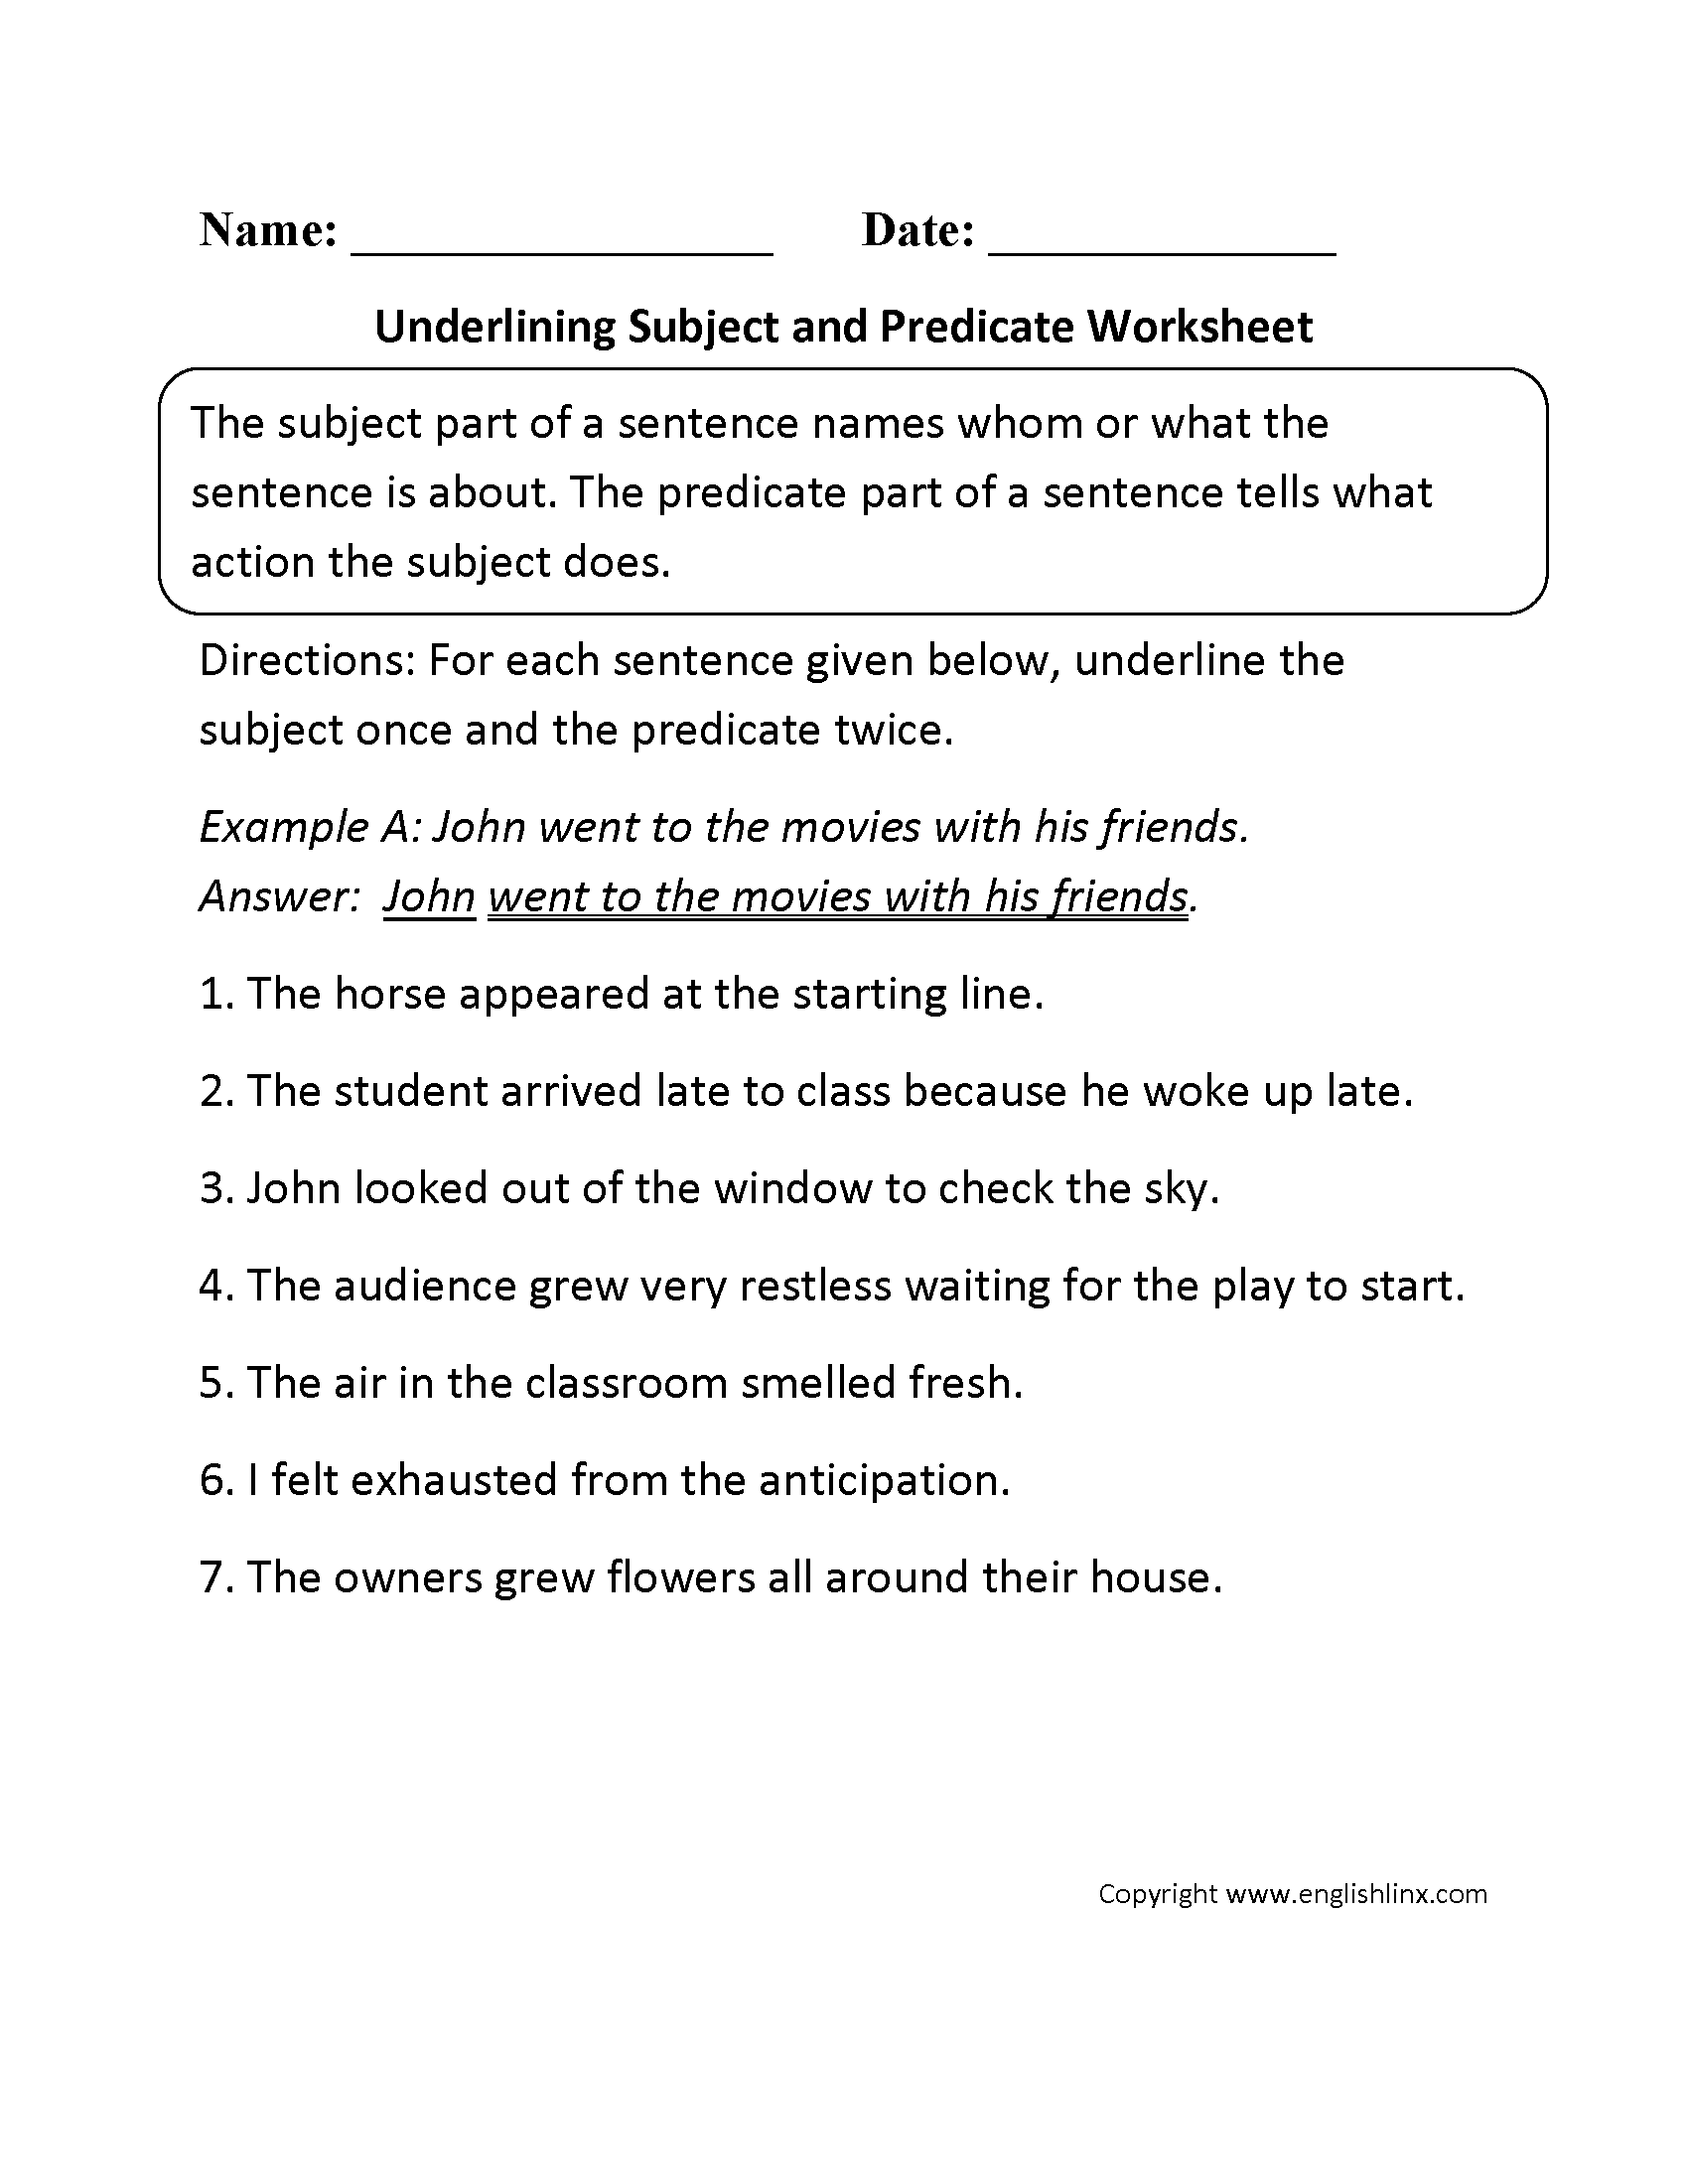 12 Best Images Of Underline Subject Worksheet